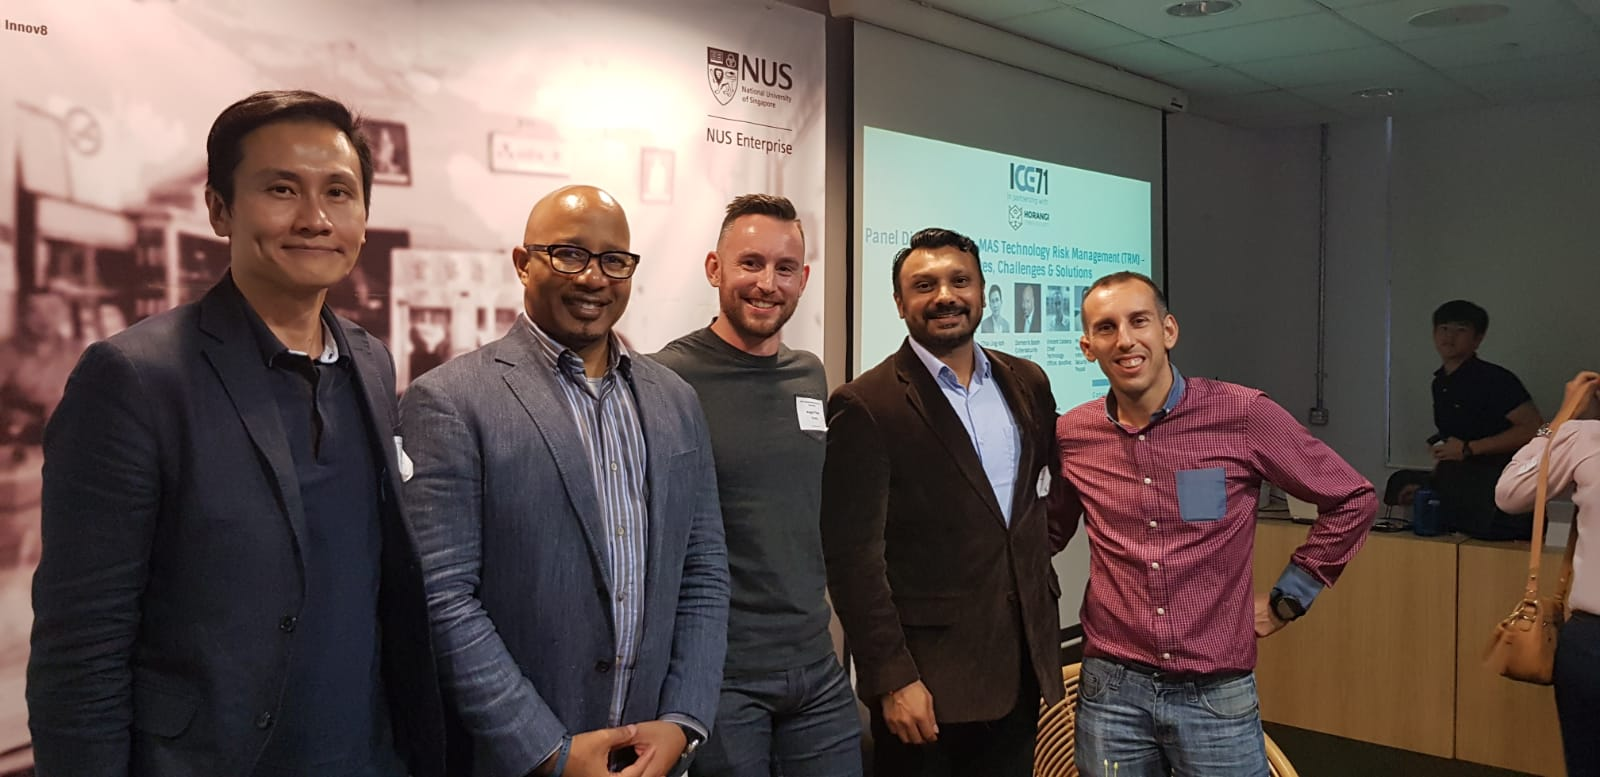 From left to right: Chia Ling Koh (Managing Director, Osborne Clarke), Demetris Booth (Cybersecurity Consultant), Angus Thorn (Head of Incident Response and Threat Intelligence, Horangi), Phoram Mehta (Head of Information Security APAC, Paypal), Vincent Caldeira (Chief Technology Officer, Bondlinc).